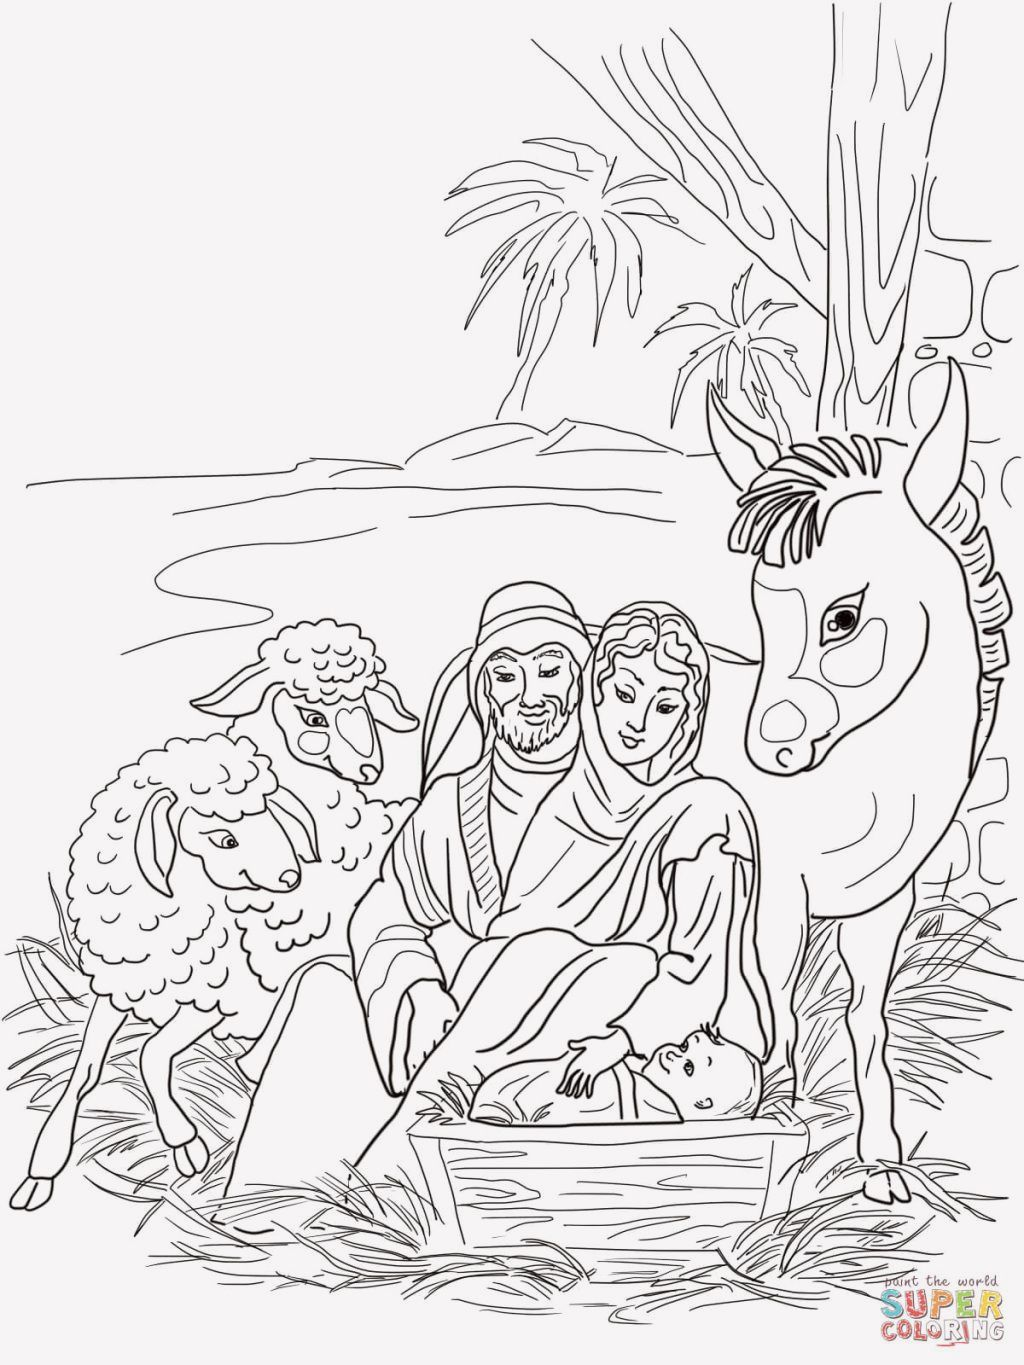 20 Catholic Alphabet Coloring Pages In